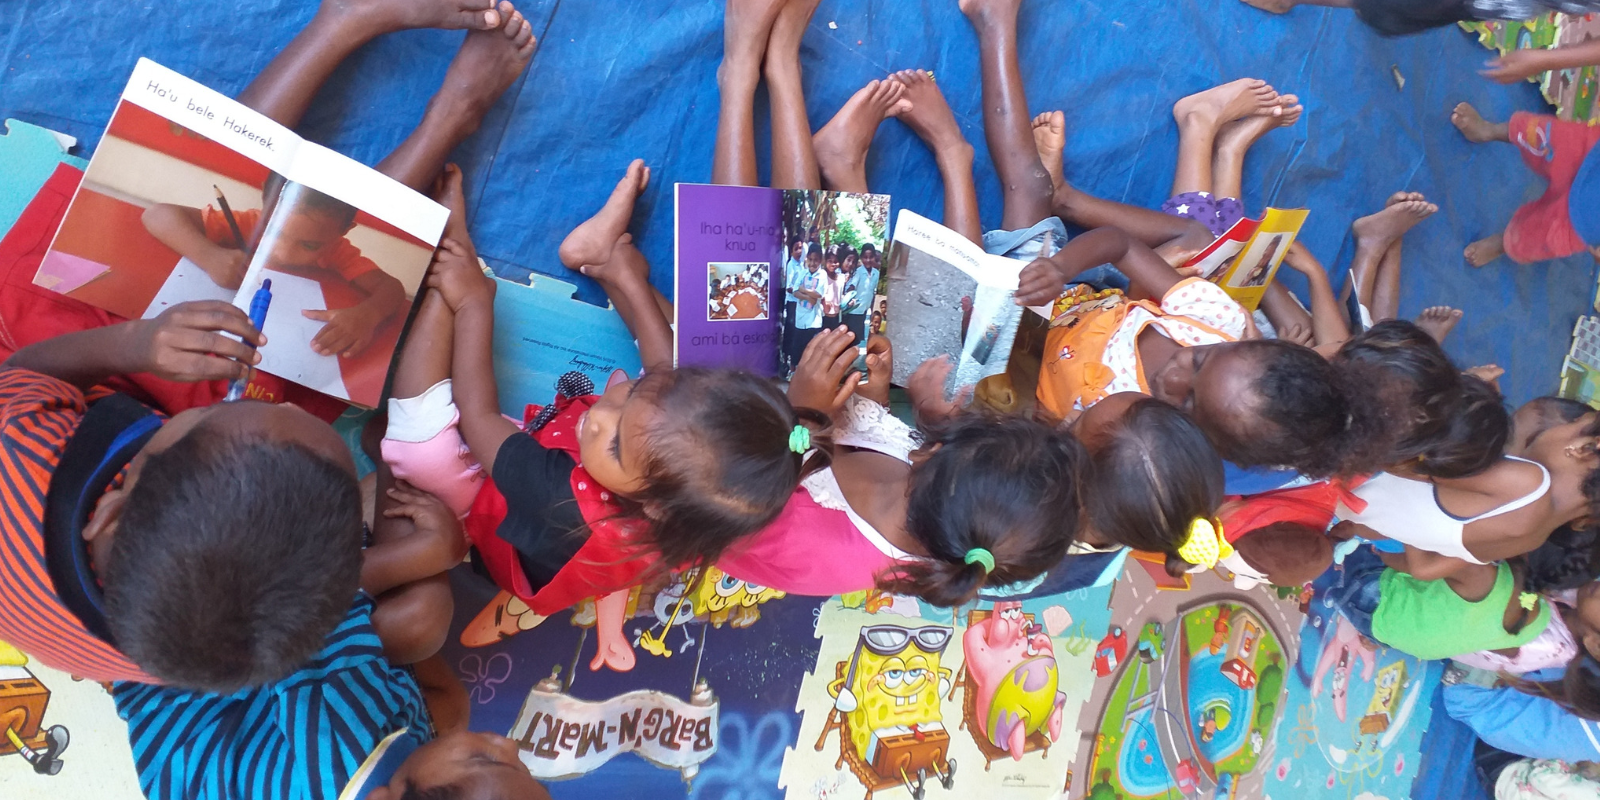 Children are excited to read a book in Tetun (one of Timor-Leste's national languages